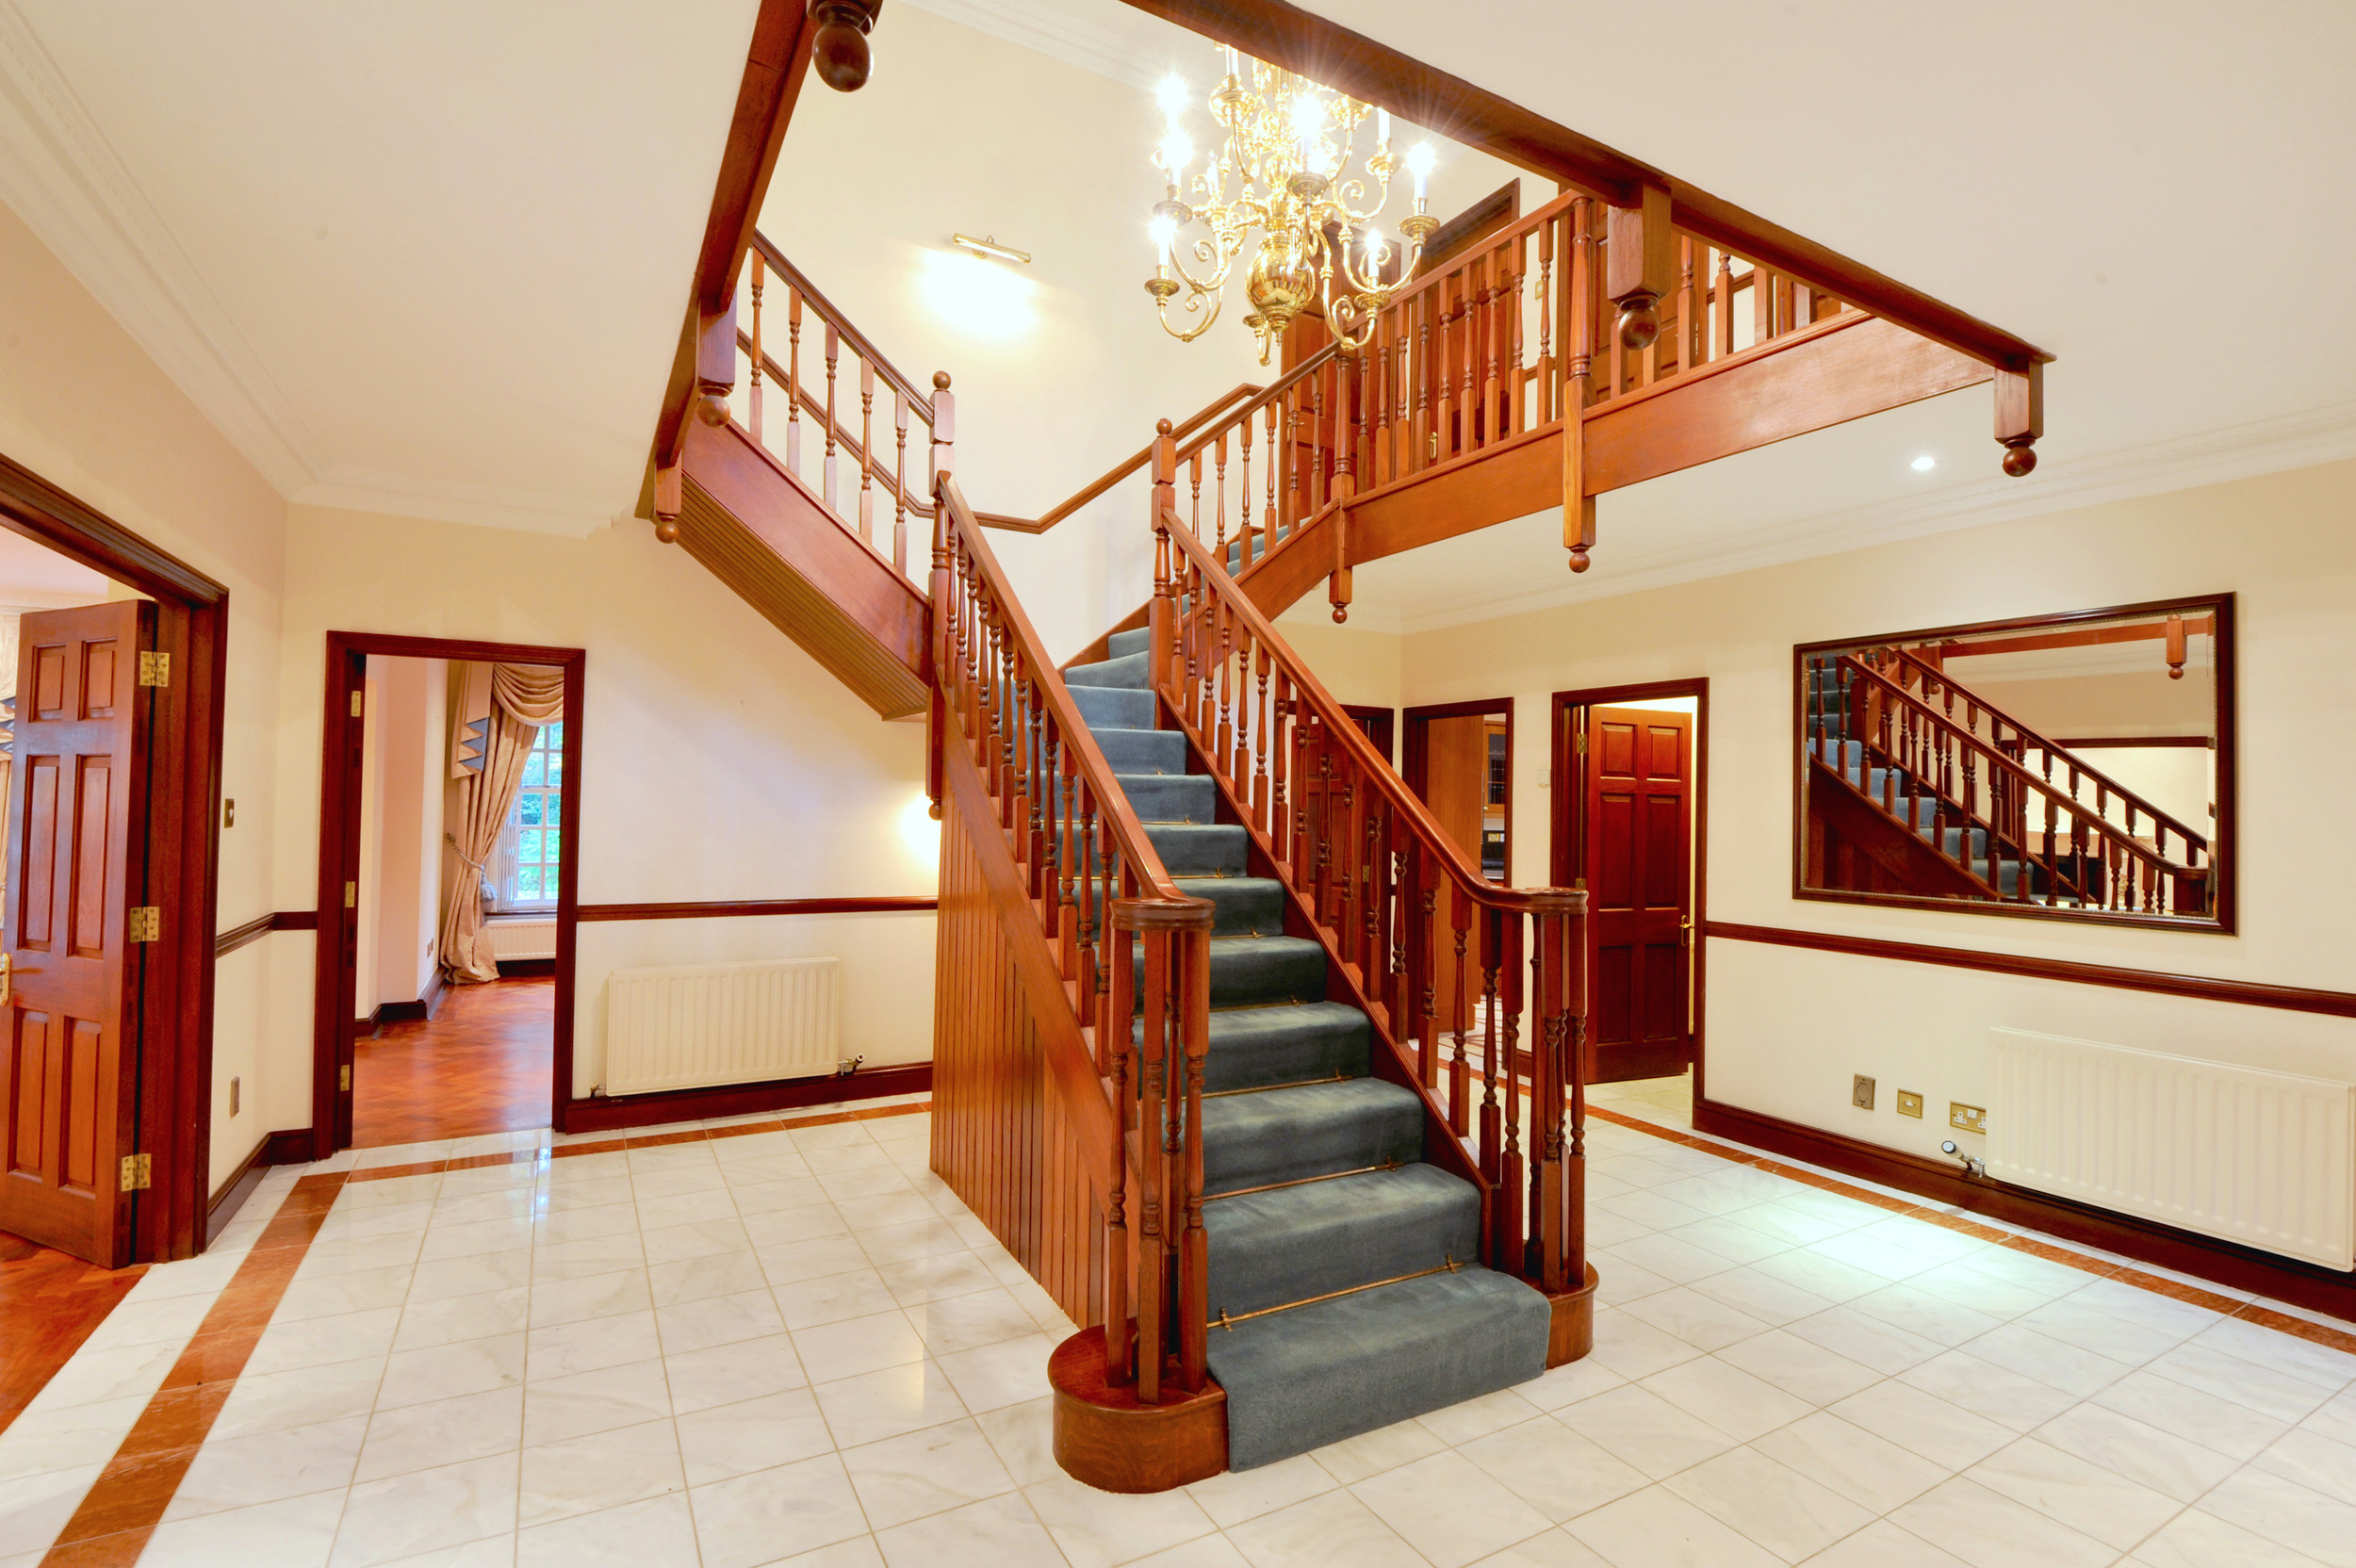 entrance hall stairs - do not use.jpg